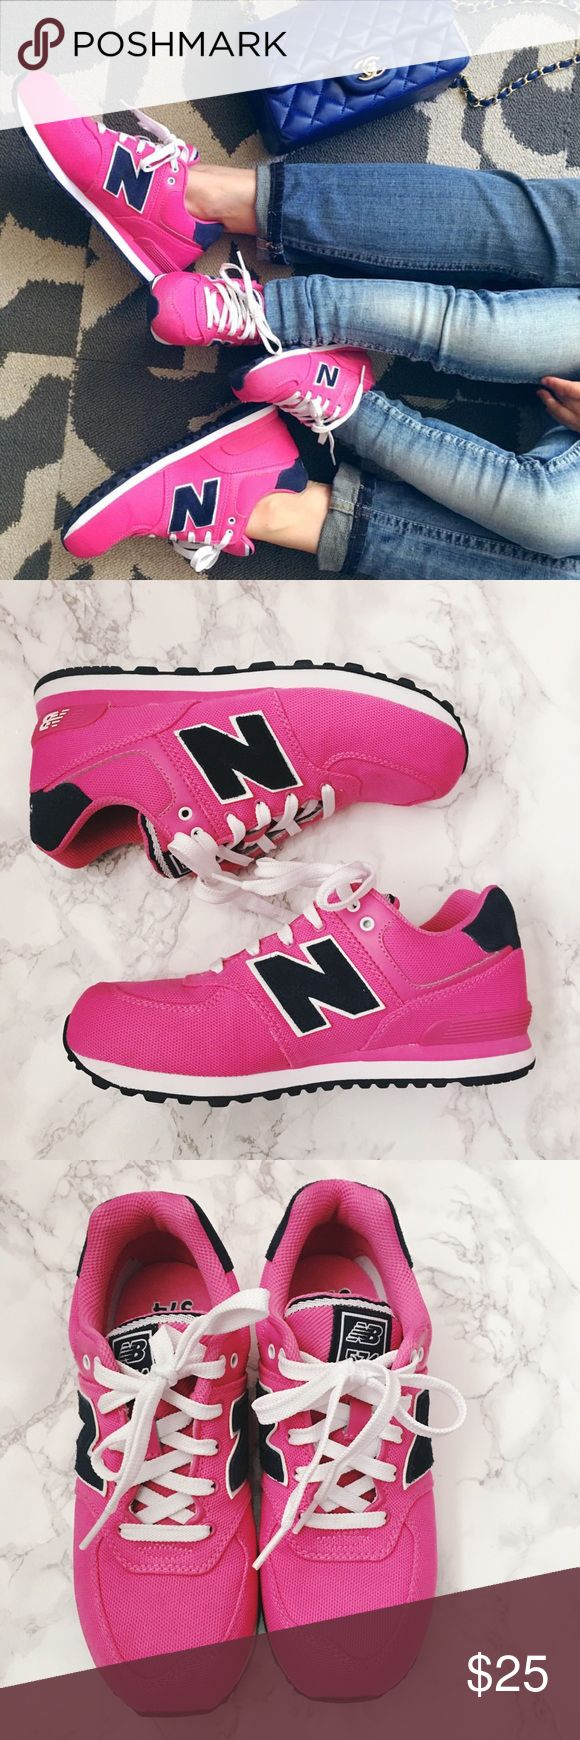 New Balance 574 Sneakers Kid's size 4 but equivalent to Women's size 5.5-6 Only worn twice, still looks brand new New Balance Shoes Sneakers